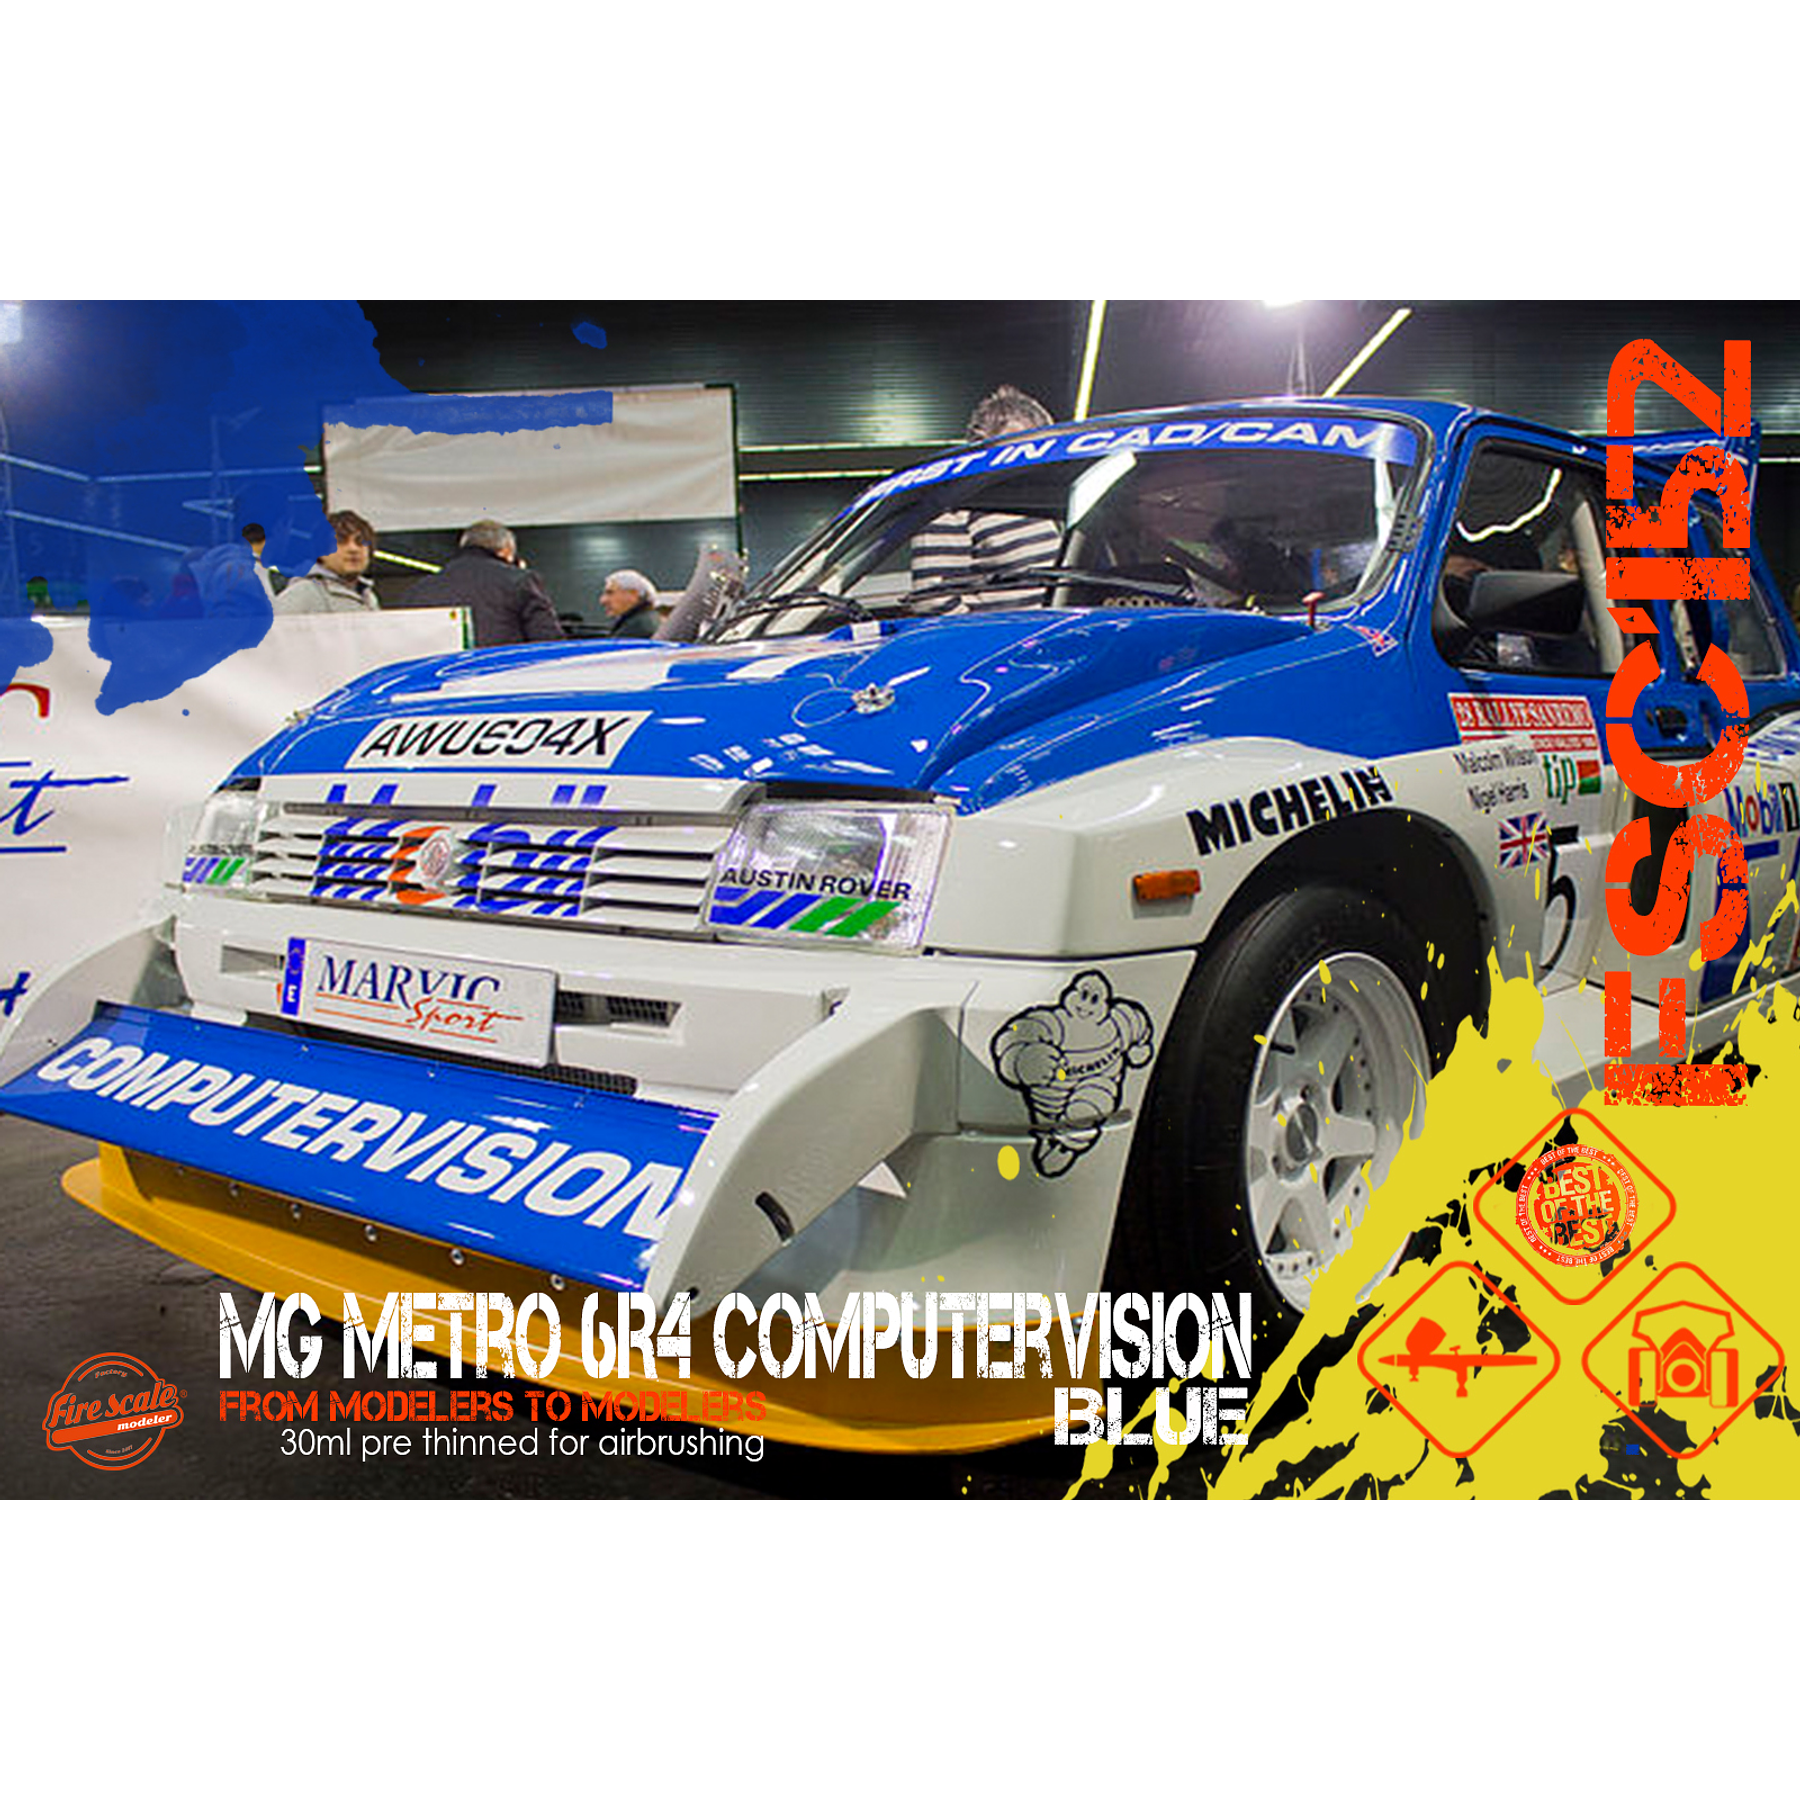 MG Metro 6R4 Computervision Blue